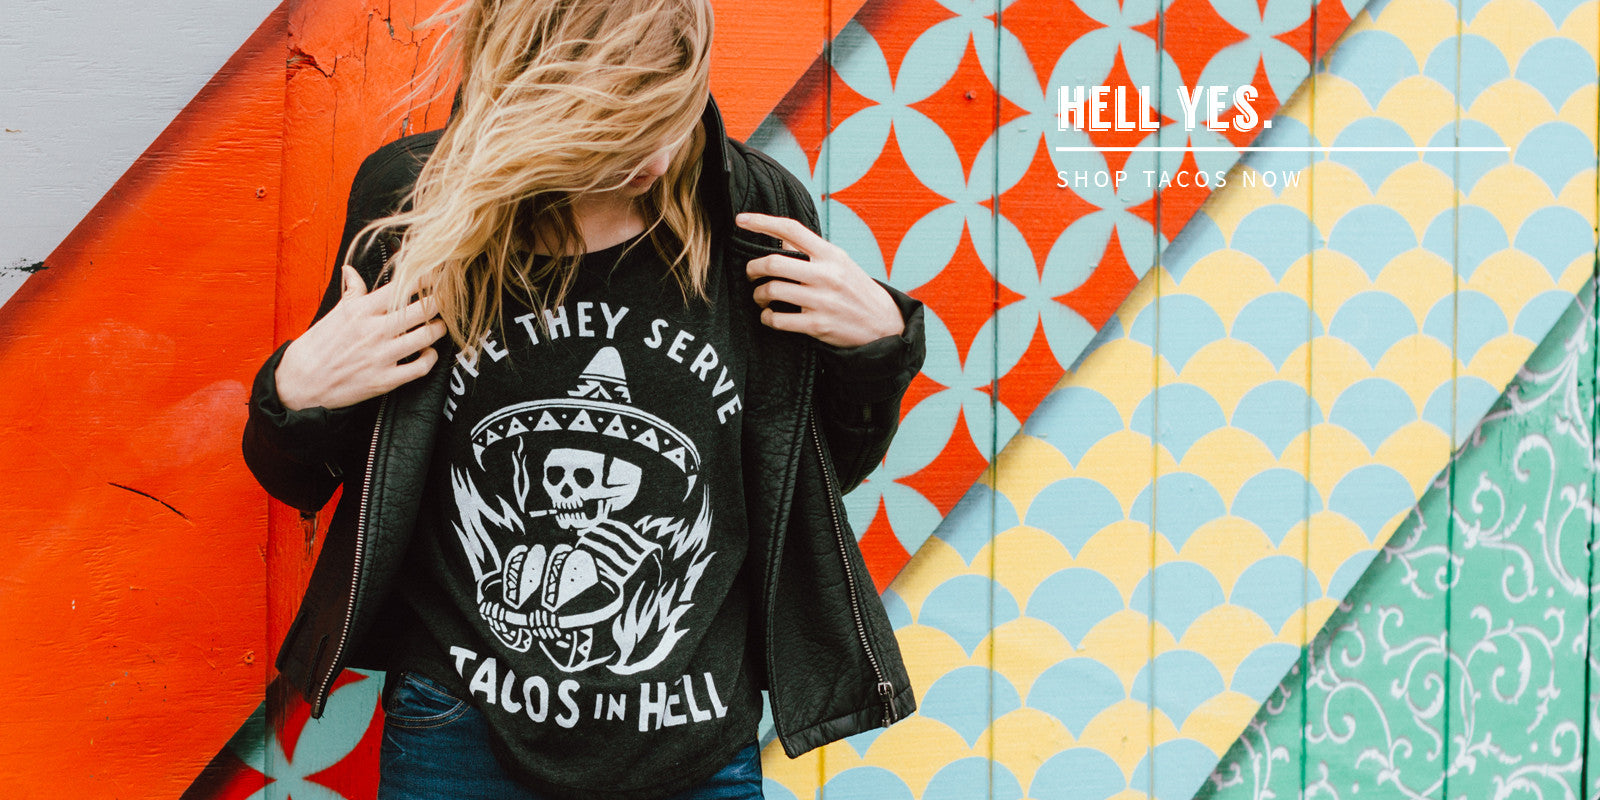 The Best Taco Meme T-shirts, Tanks, Tees, and Tacos Sweatshirts